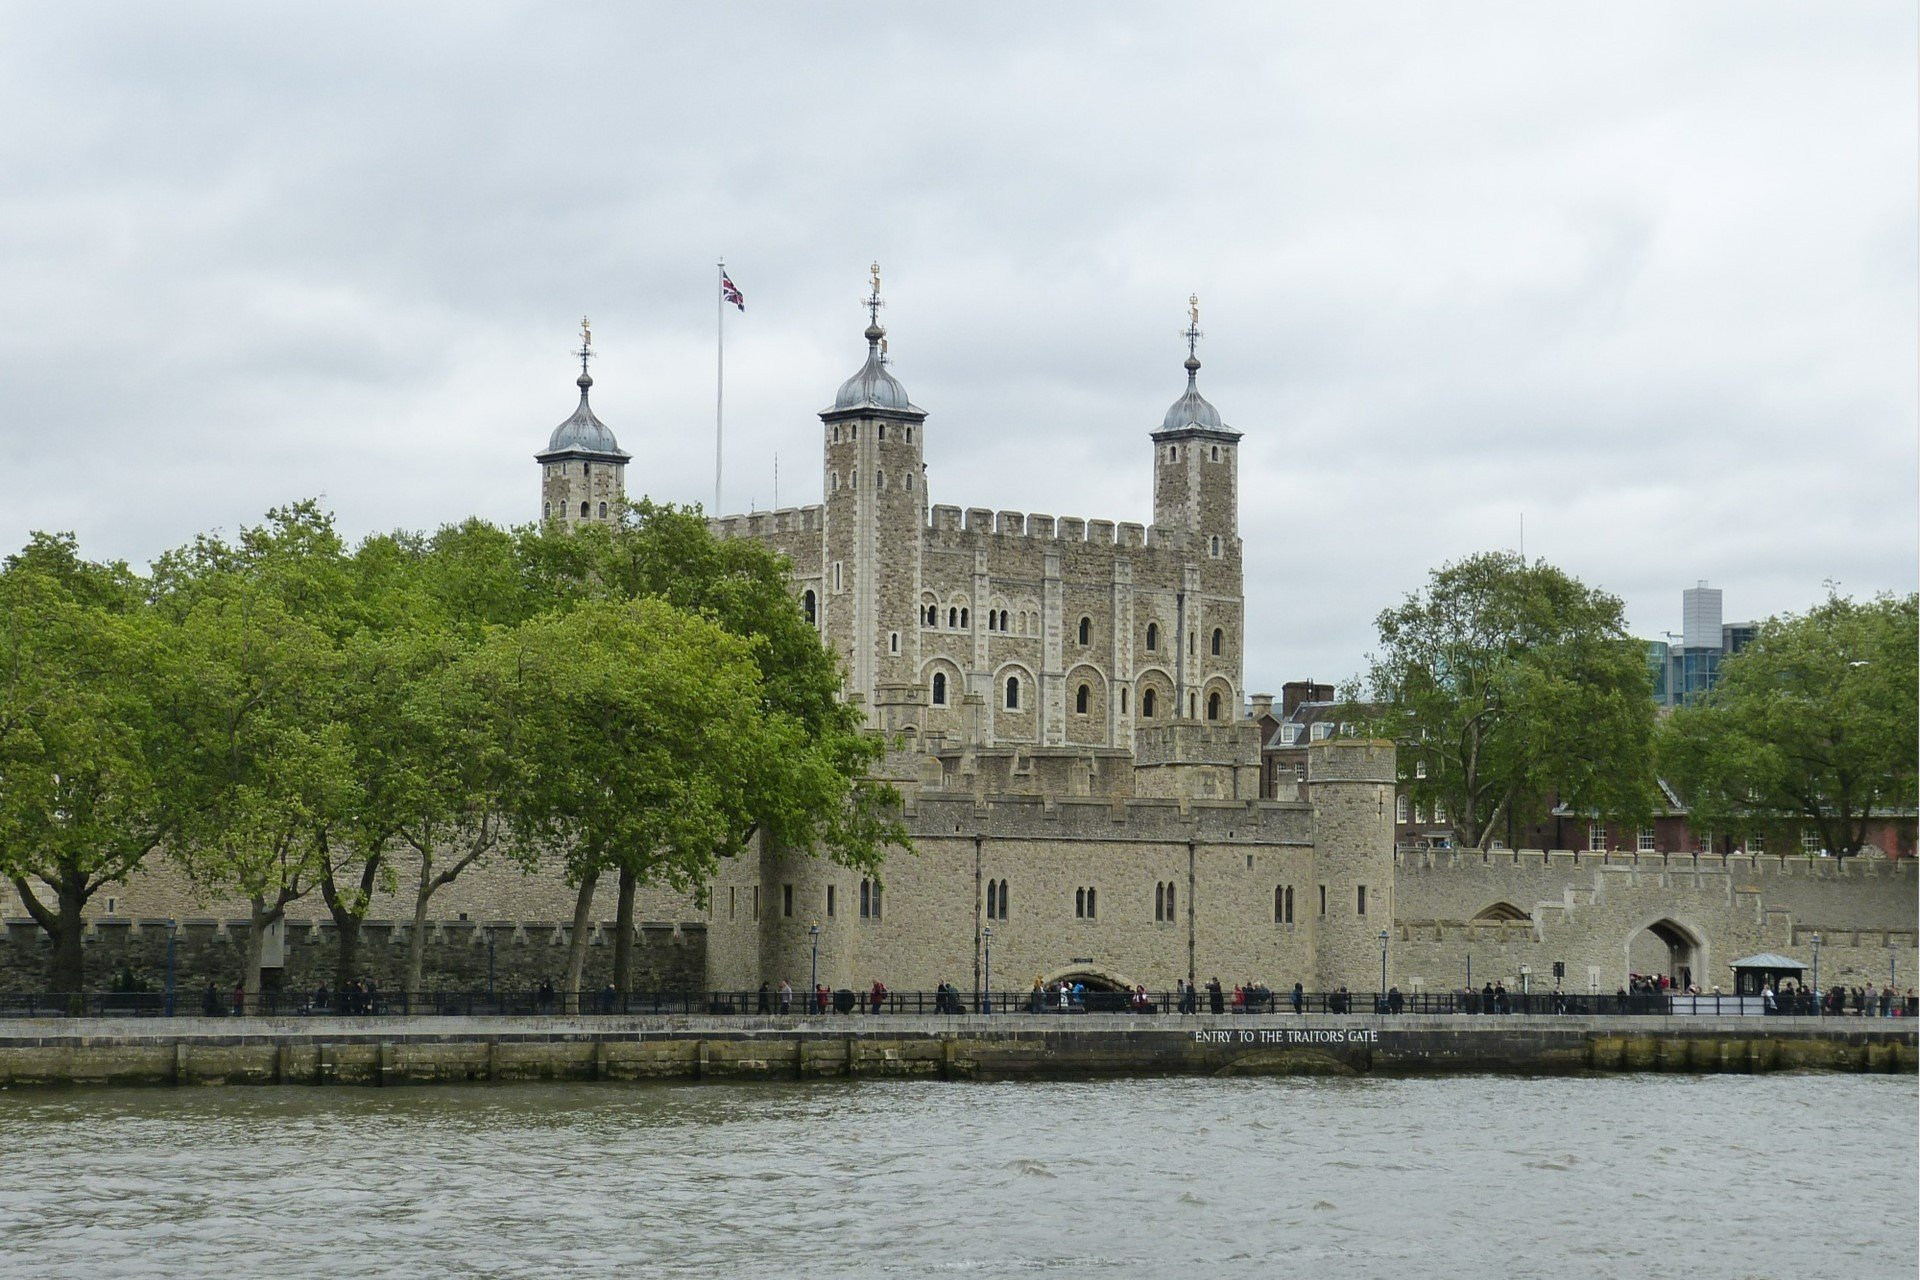 Tower of London on the River Thames in London